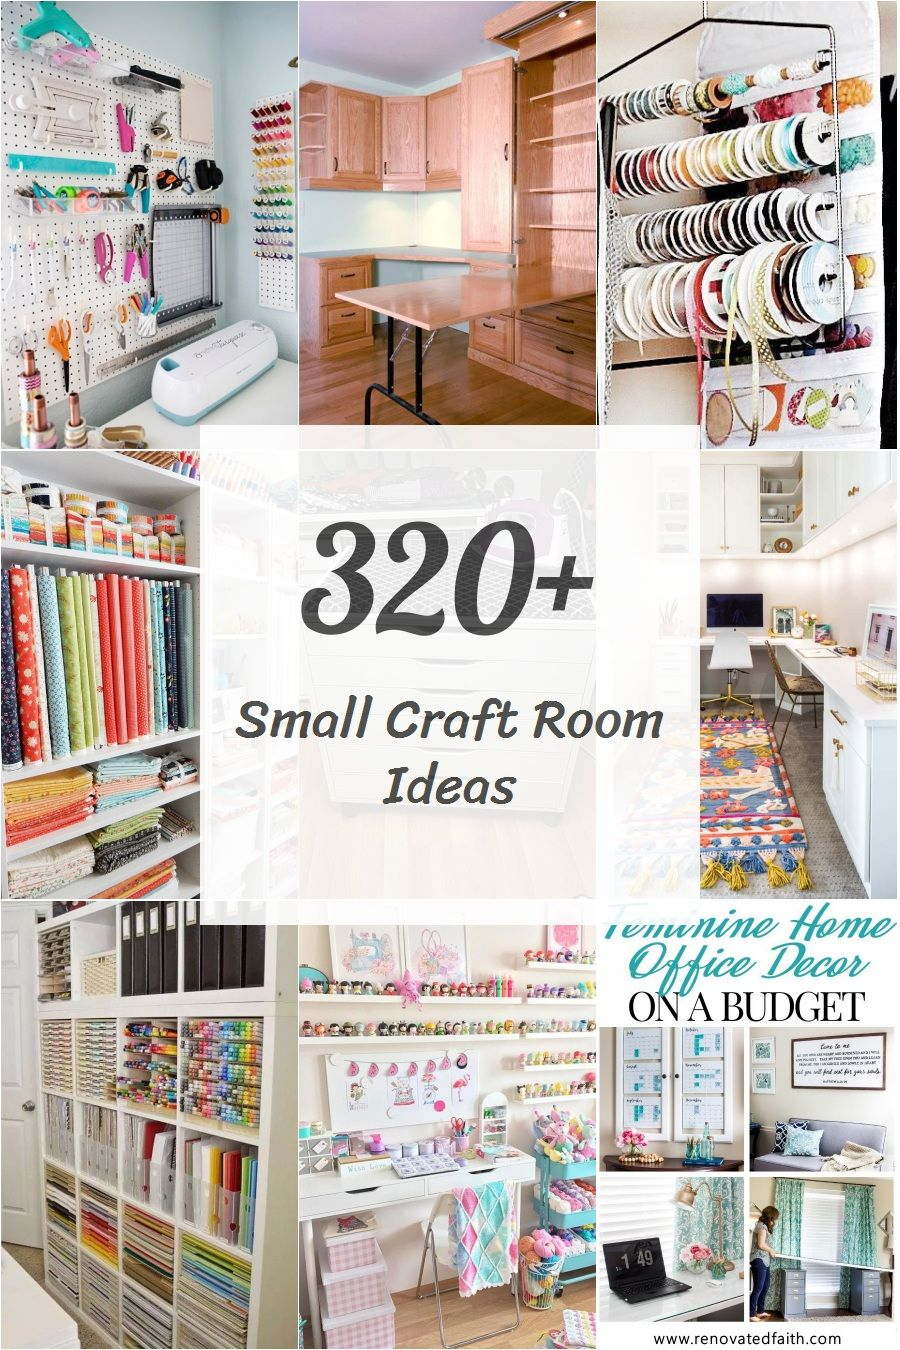 320+ Small Craft Room Ideas, Cricut Craft Room Organization Ideas Cricut Craft Room Organization Ideas, Tips, and Tricks, including IKEA Hacks! Create a organized small space for your Martha Stewart Cricut Explore Air 2 with drawers and storage! - Create a Cricut Craft Room Space with Drawers and Cricut Pegboard Ideas with Tips, Tricks, and Craft Room Organization Ideas with your Cricut Explore Air 2 from Martha Stewart and Michaels #ad #cricut #cricutmade #cricutmarthastewart #madewithmichaels